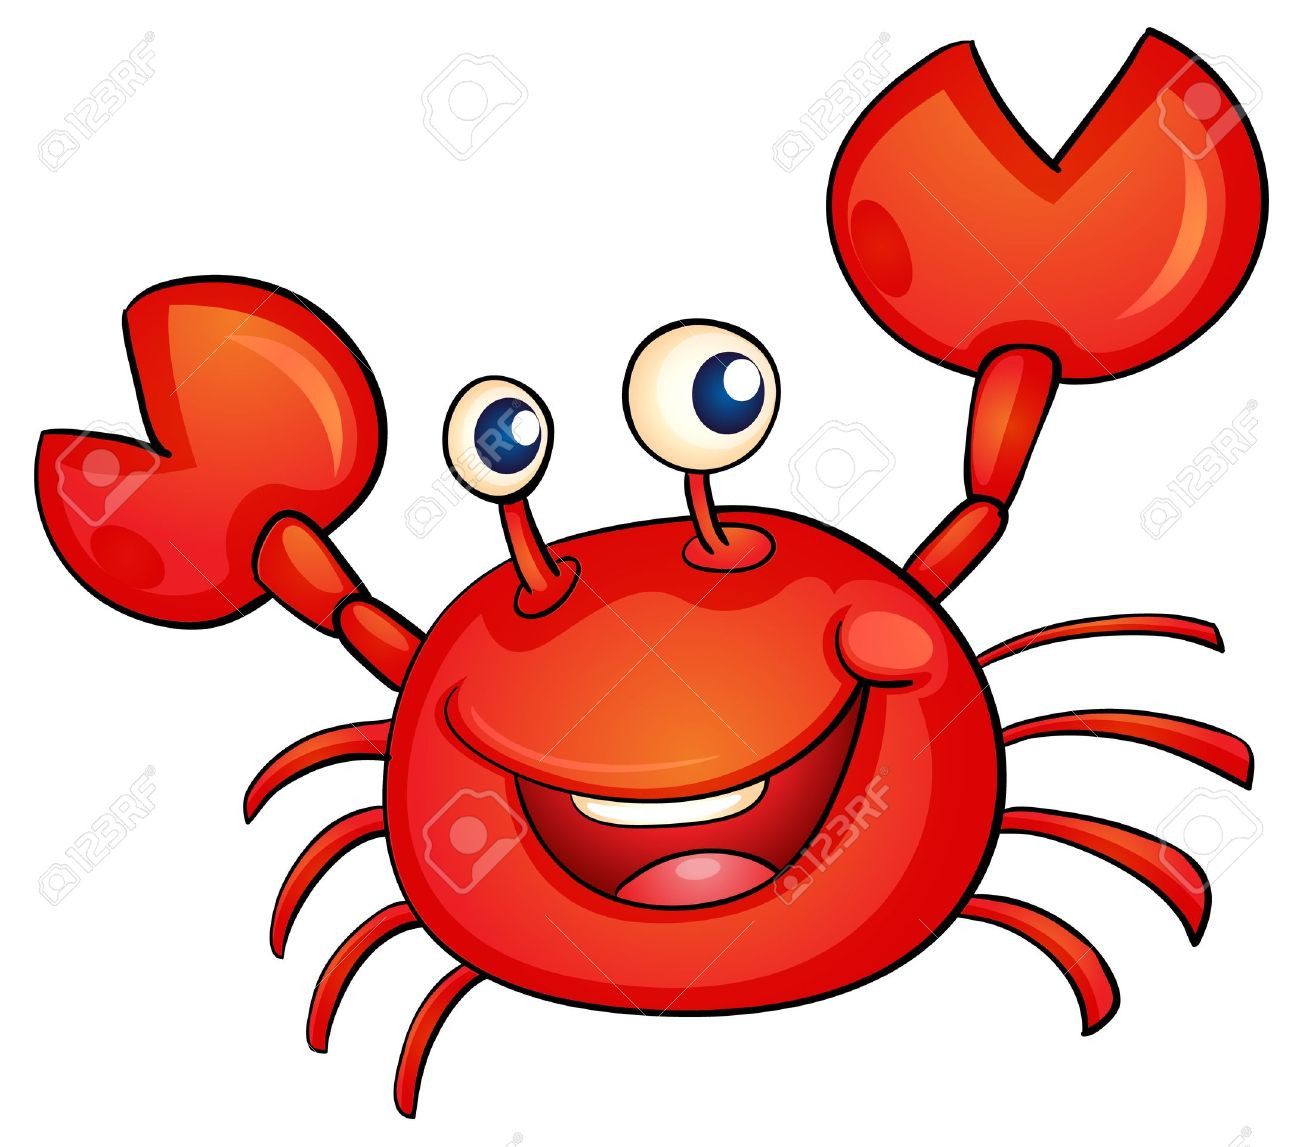 illustration of a simple crab Stock Vector - 13700065